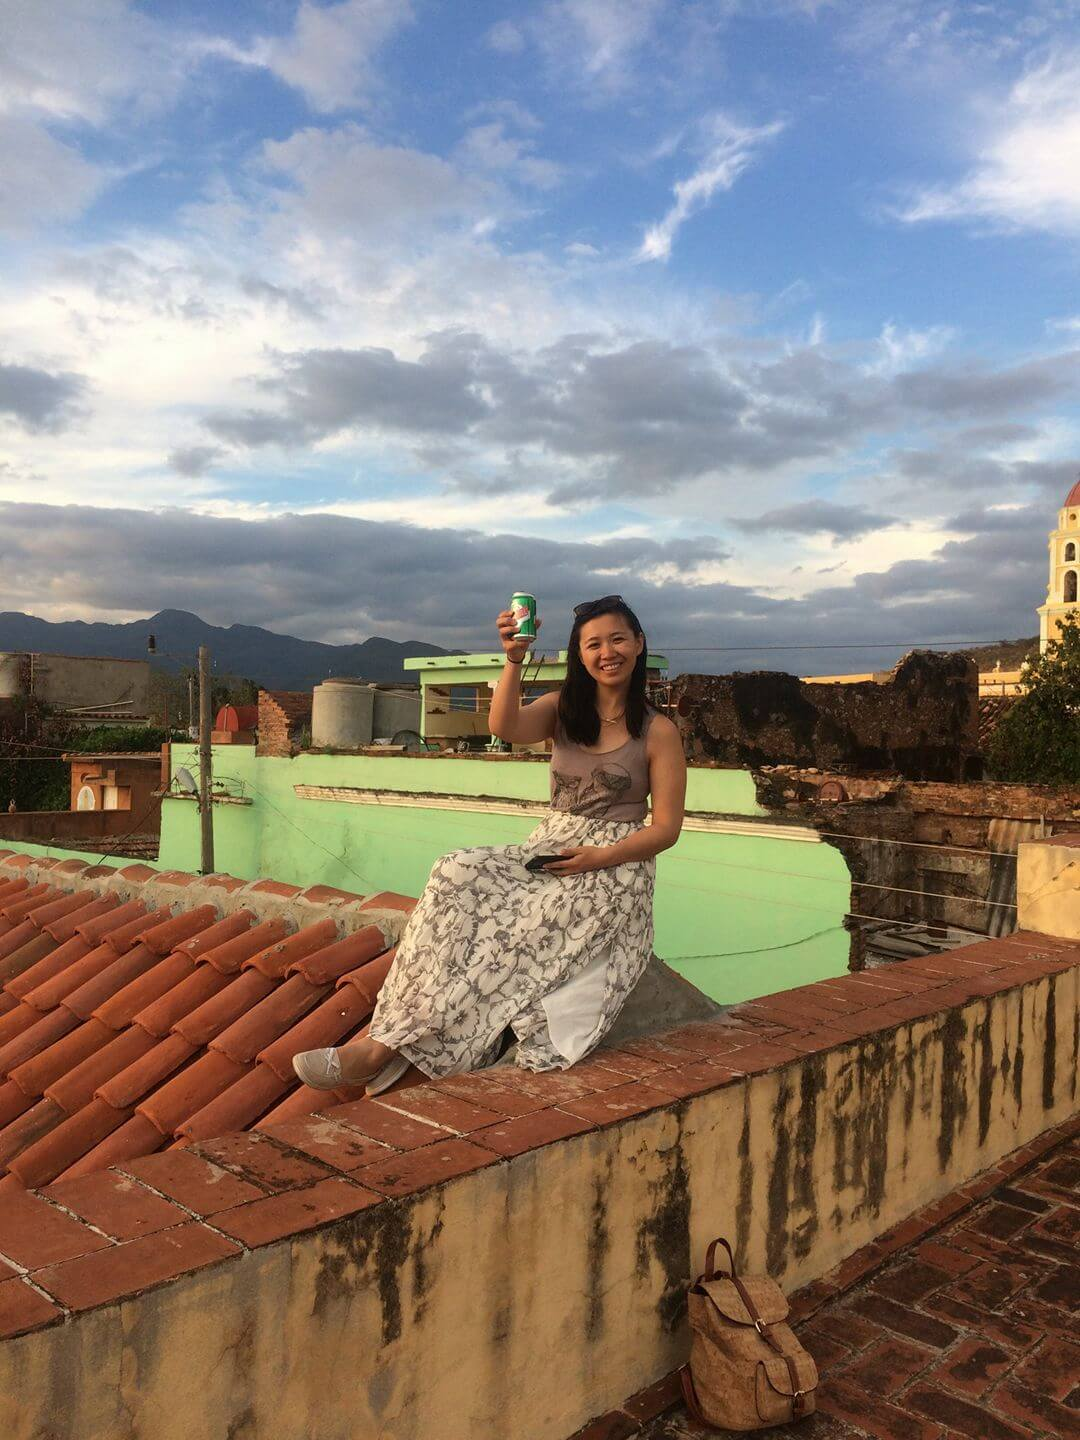 Sitting on a rooftop in Trinidad, Cuba, drinking Cristal and watching the sunset.